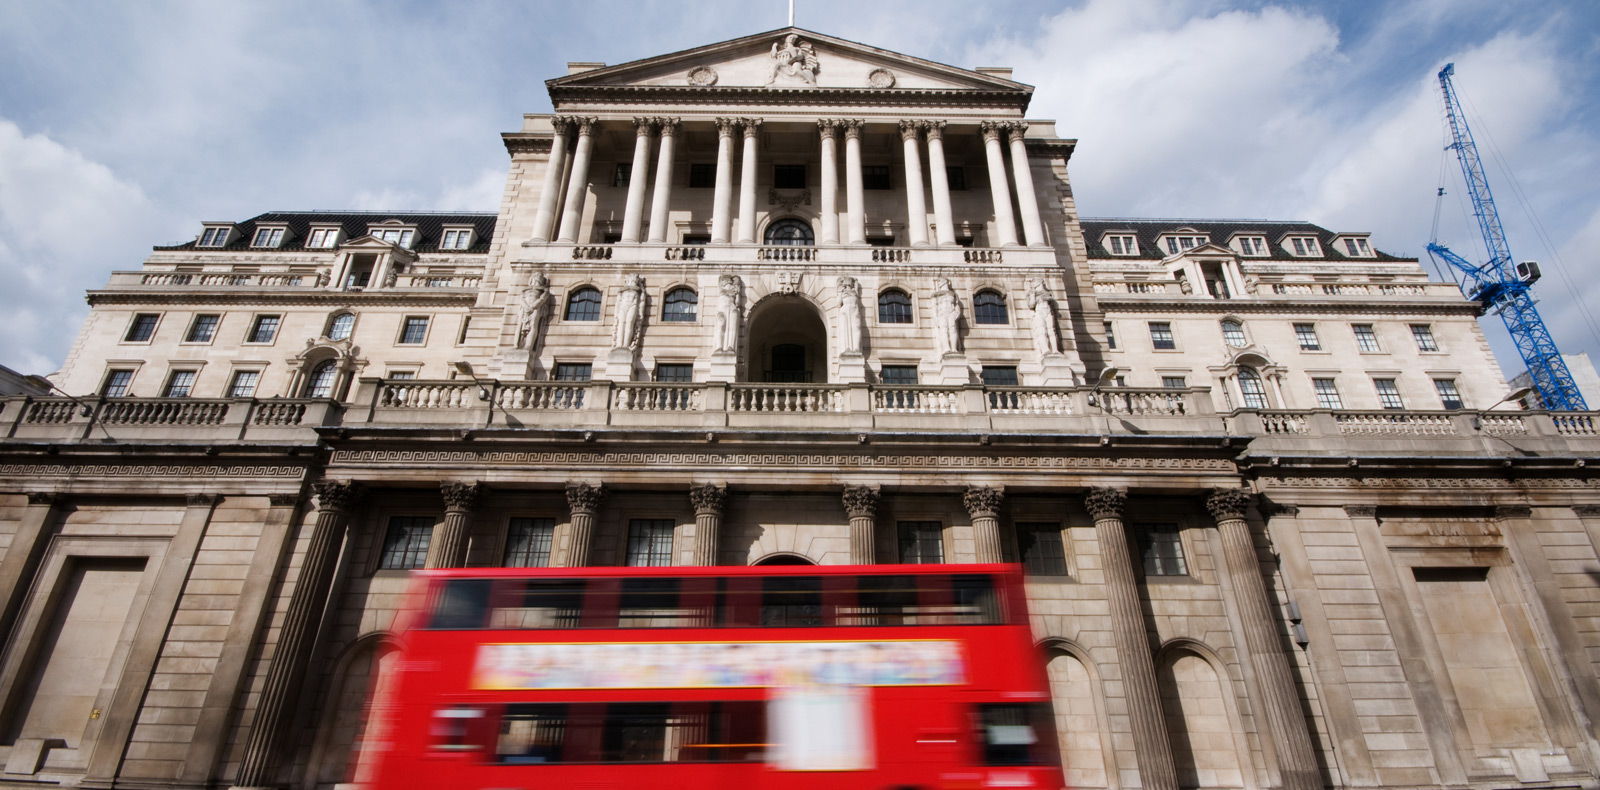 Today, the Bank of England held its interest rates steady at 0.1% and have announced a further £150bn of support for the economy.